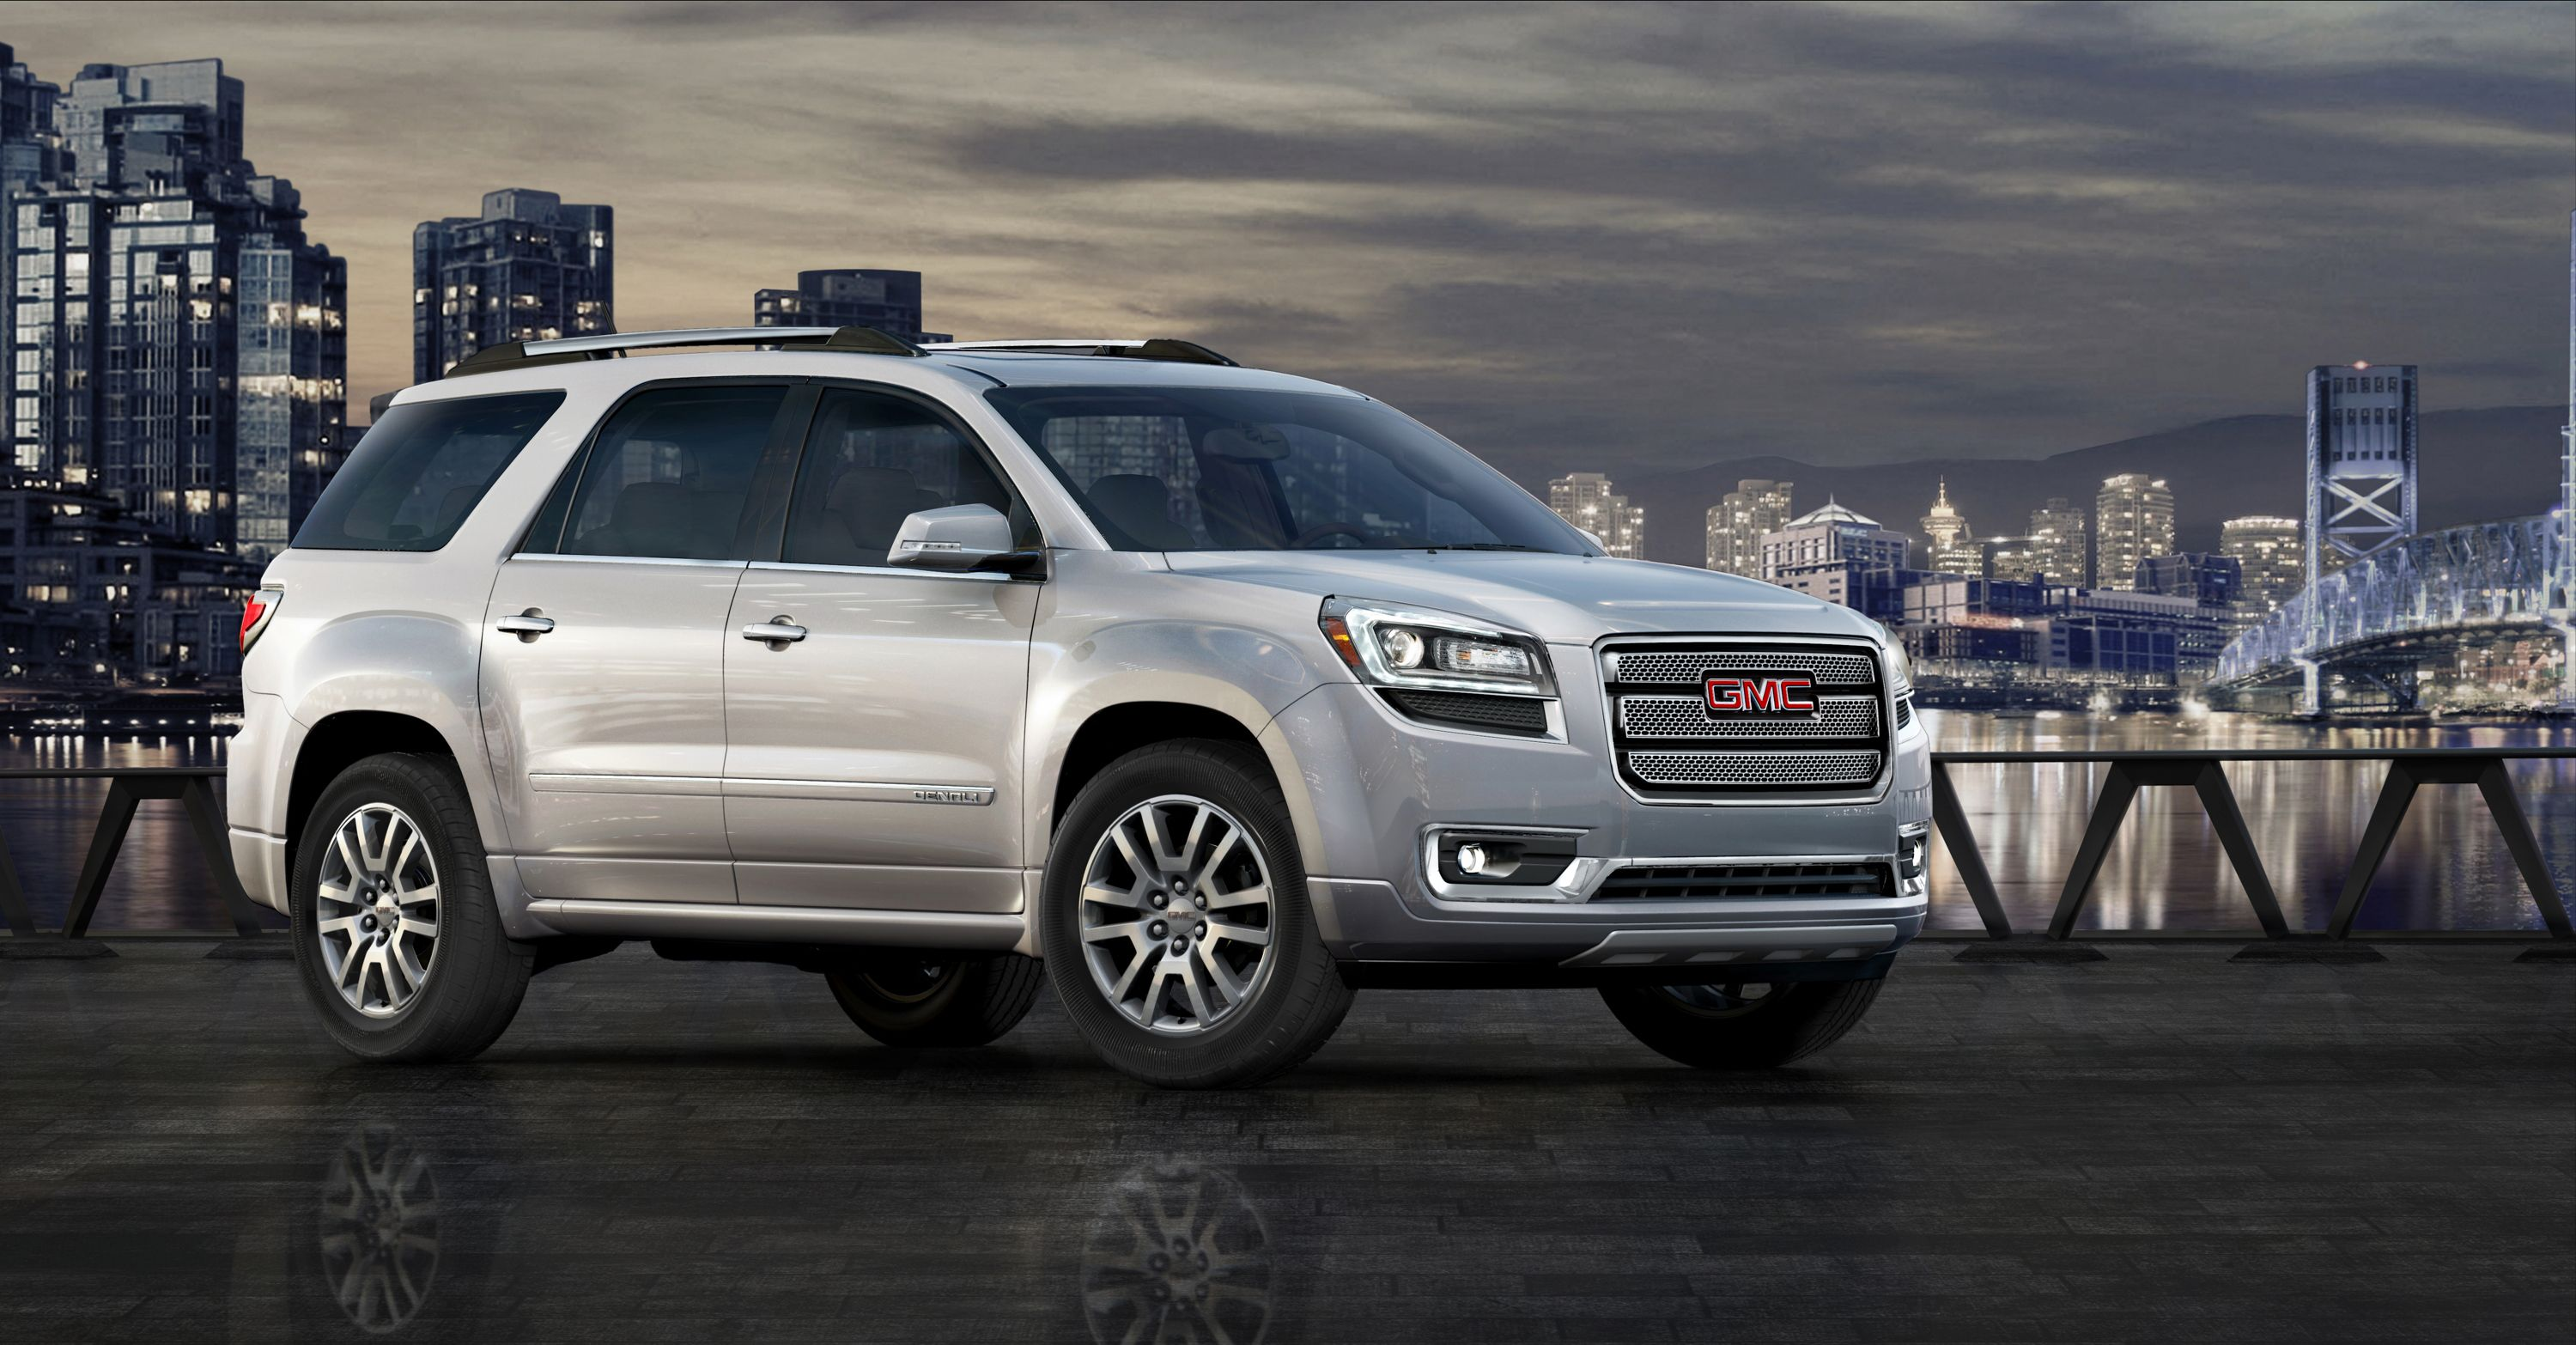 2014 Gmc Acadia Denali 3 4 Front In White Mini Van Gmc Vehicles Suv